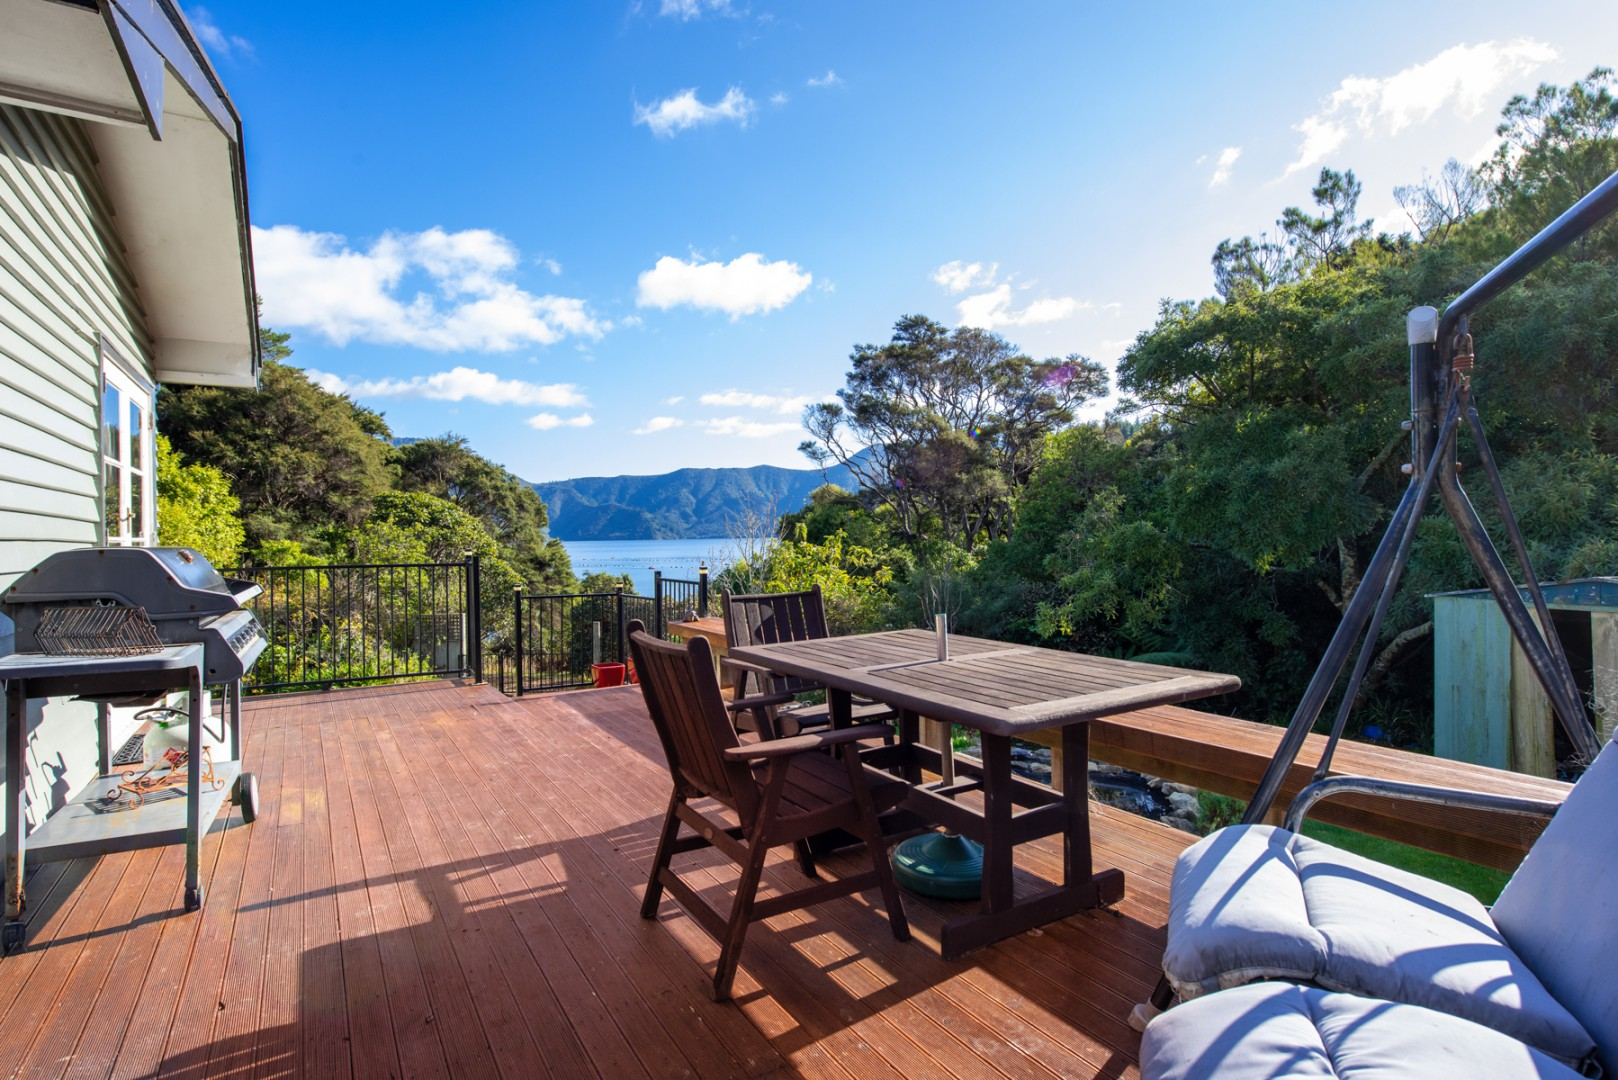 1100 Elie Bay Road - Crail Bay, Marlborough Sounds #18 -- listing/11168/r-v2.jpeg